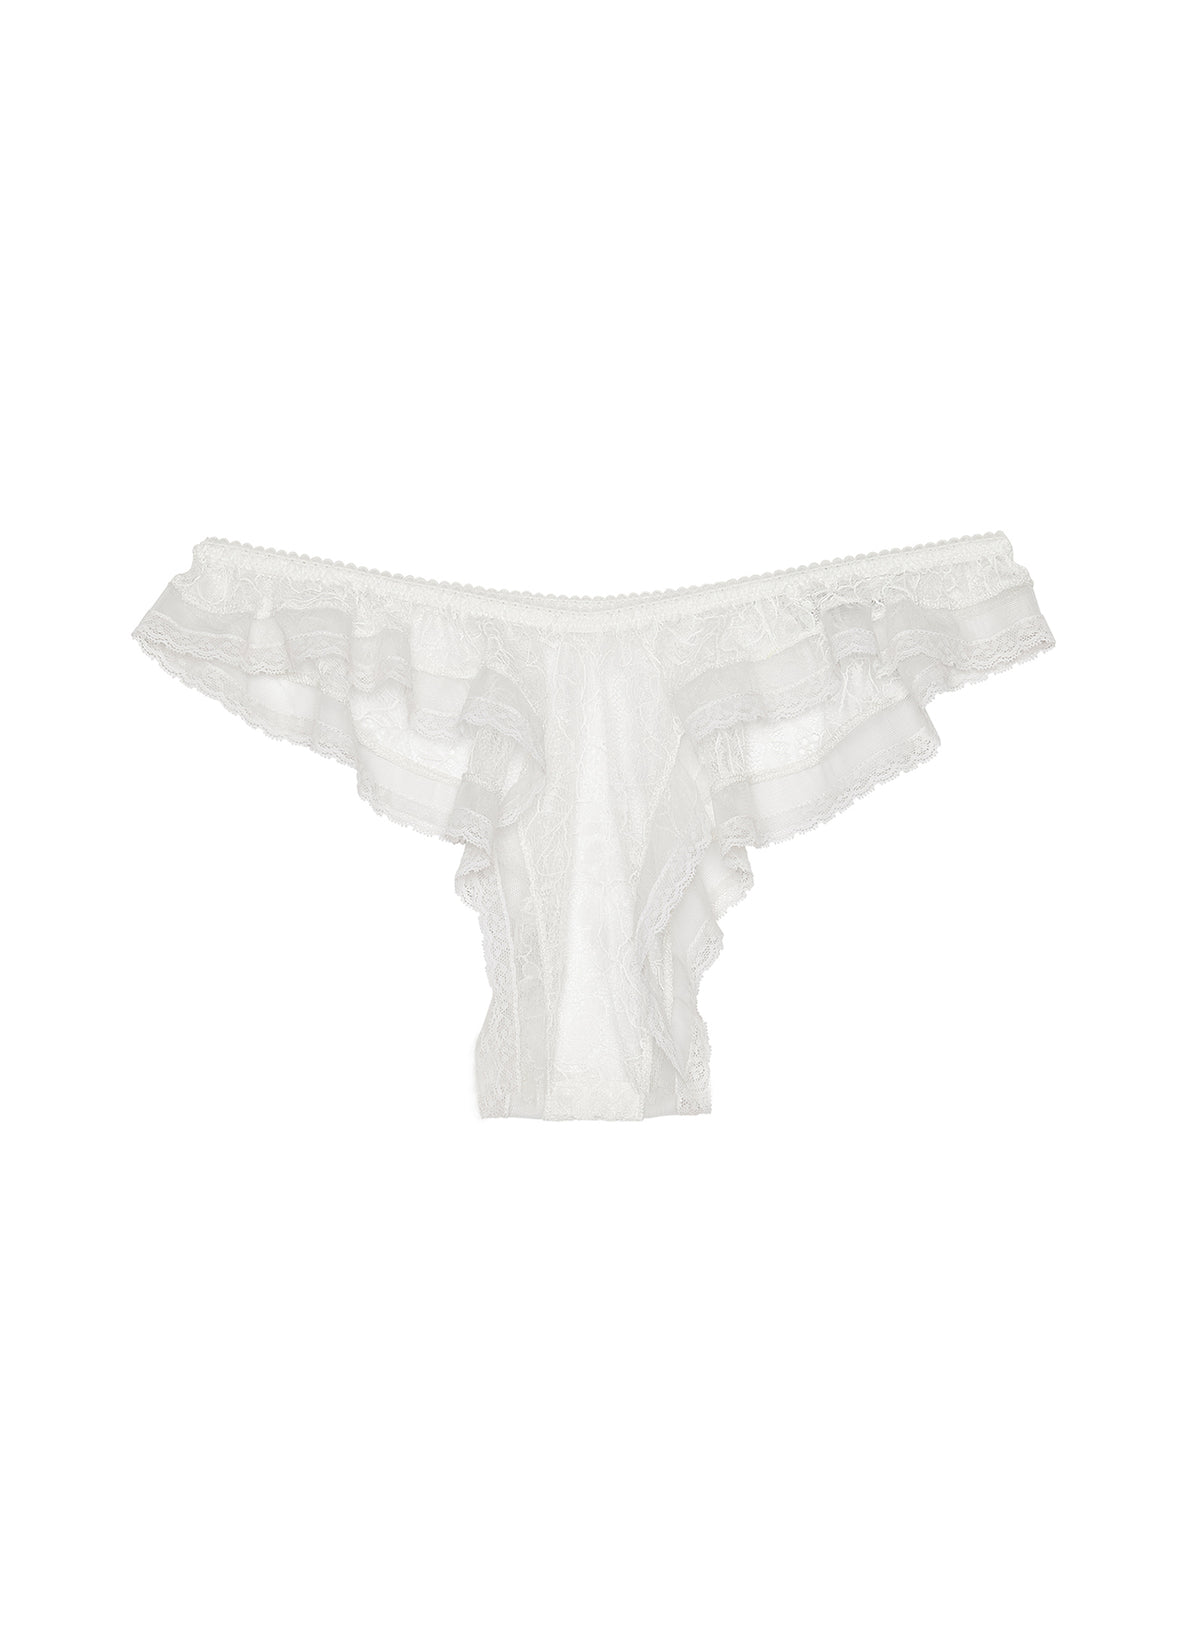 Loulou Lace Flirty Cheeky